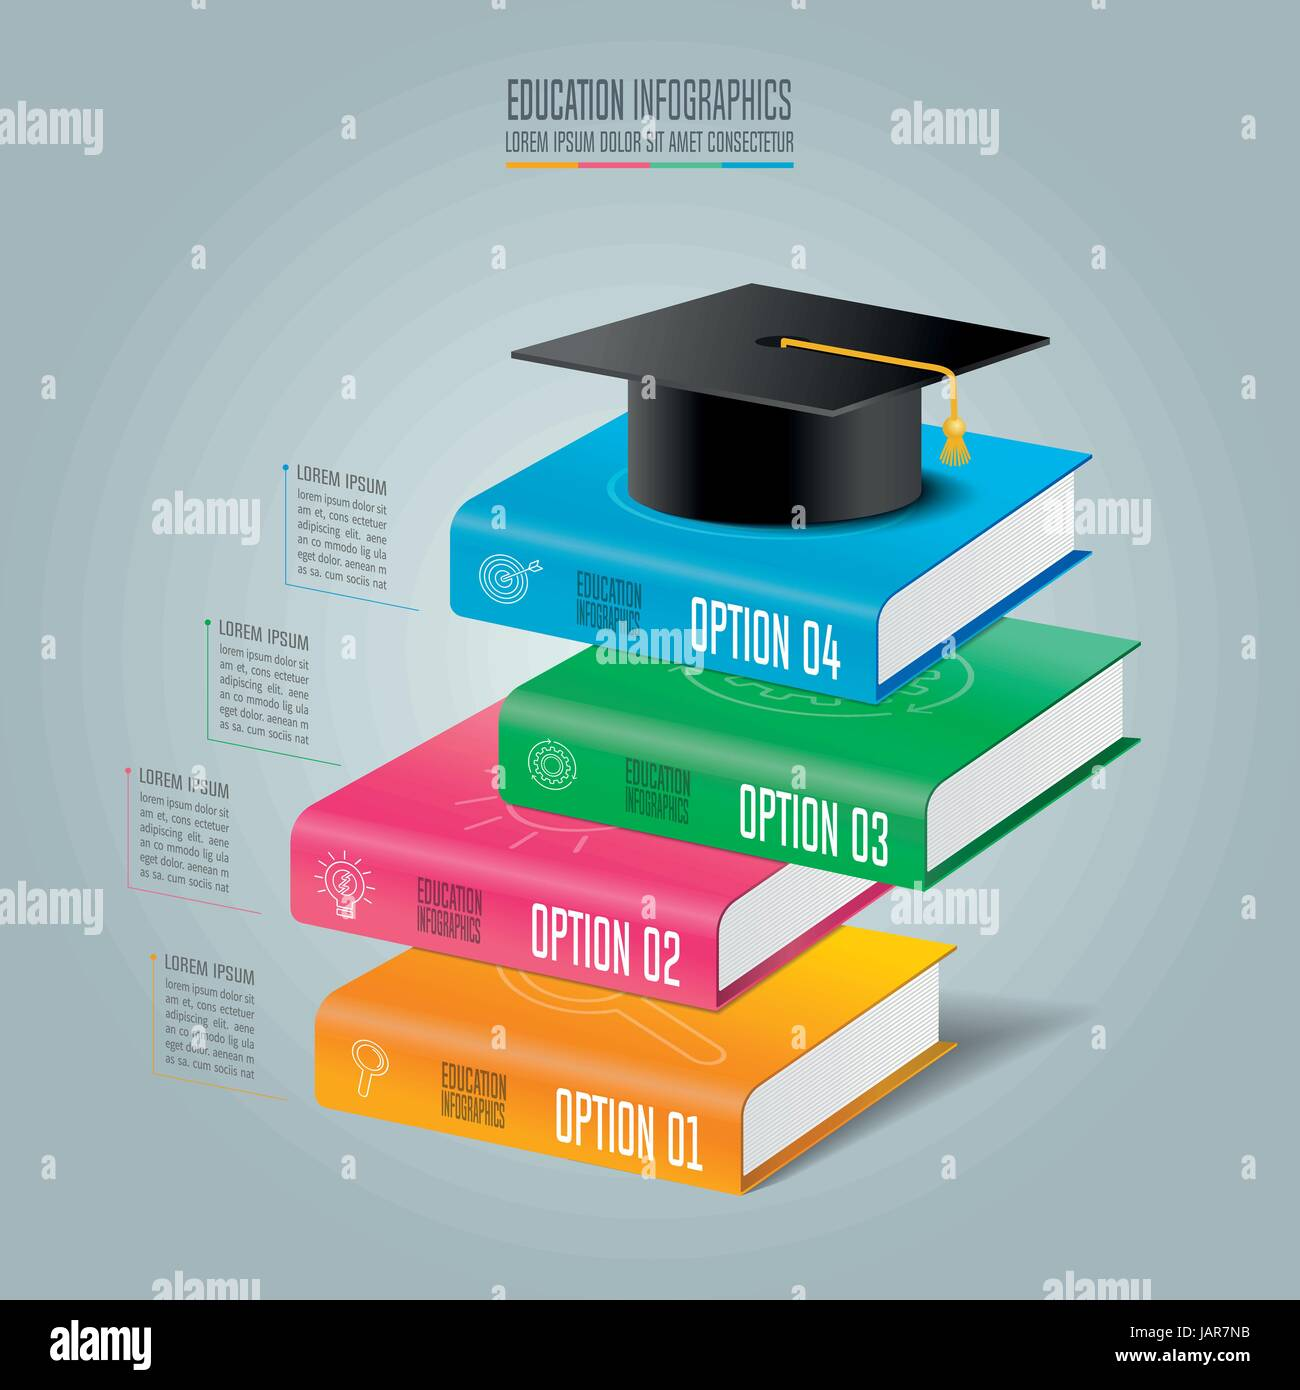 education infographics template 4 step option. graduation cap and